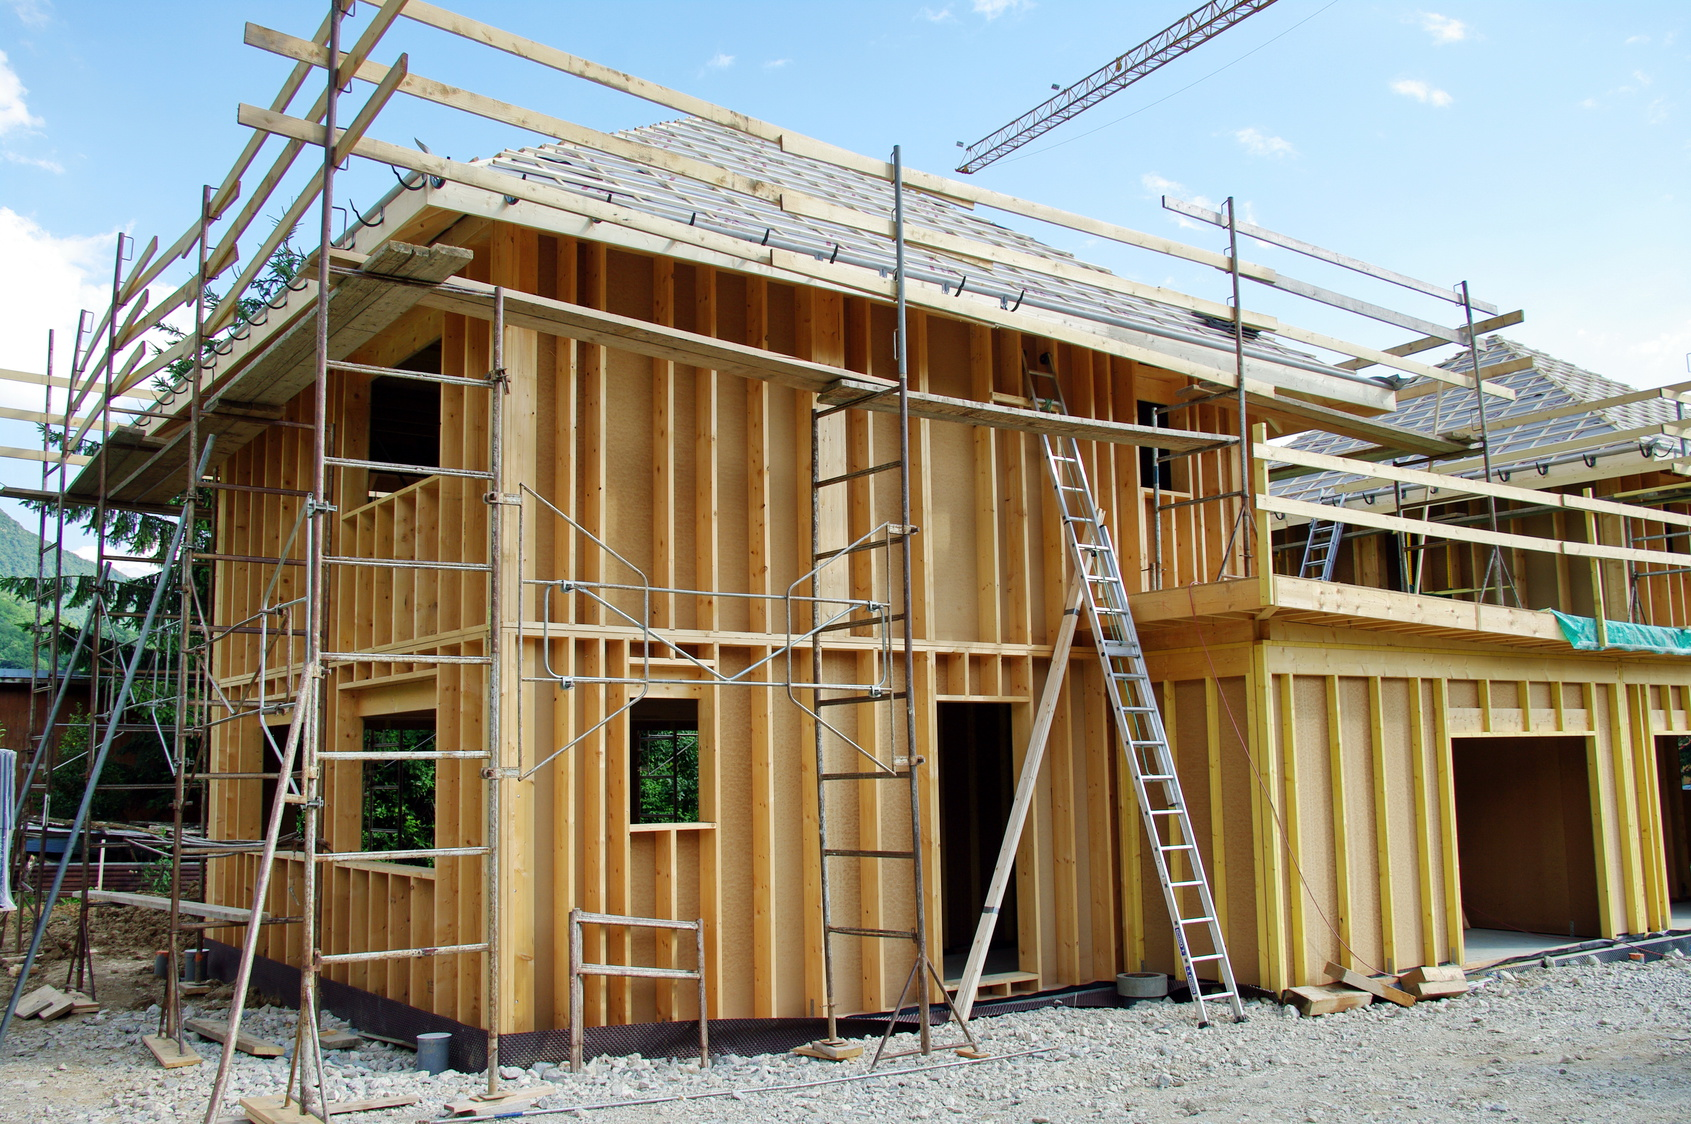 Les tapes de construction d une maison en kit for Construire une extension en ossature bois